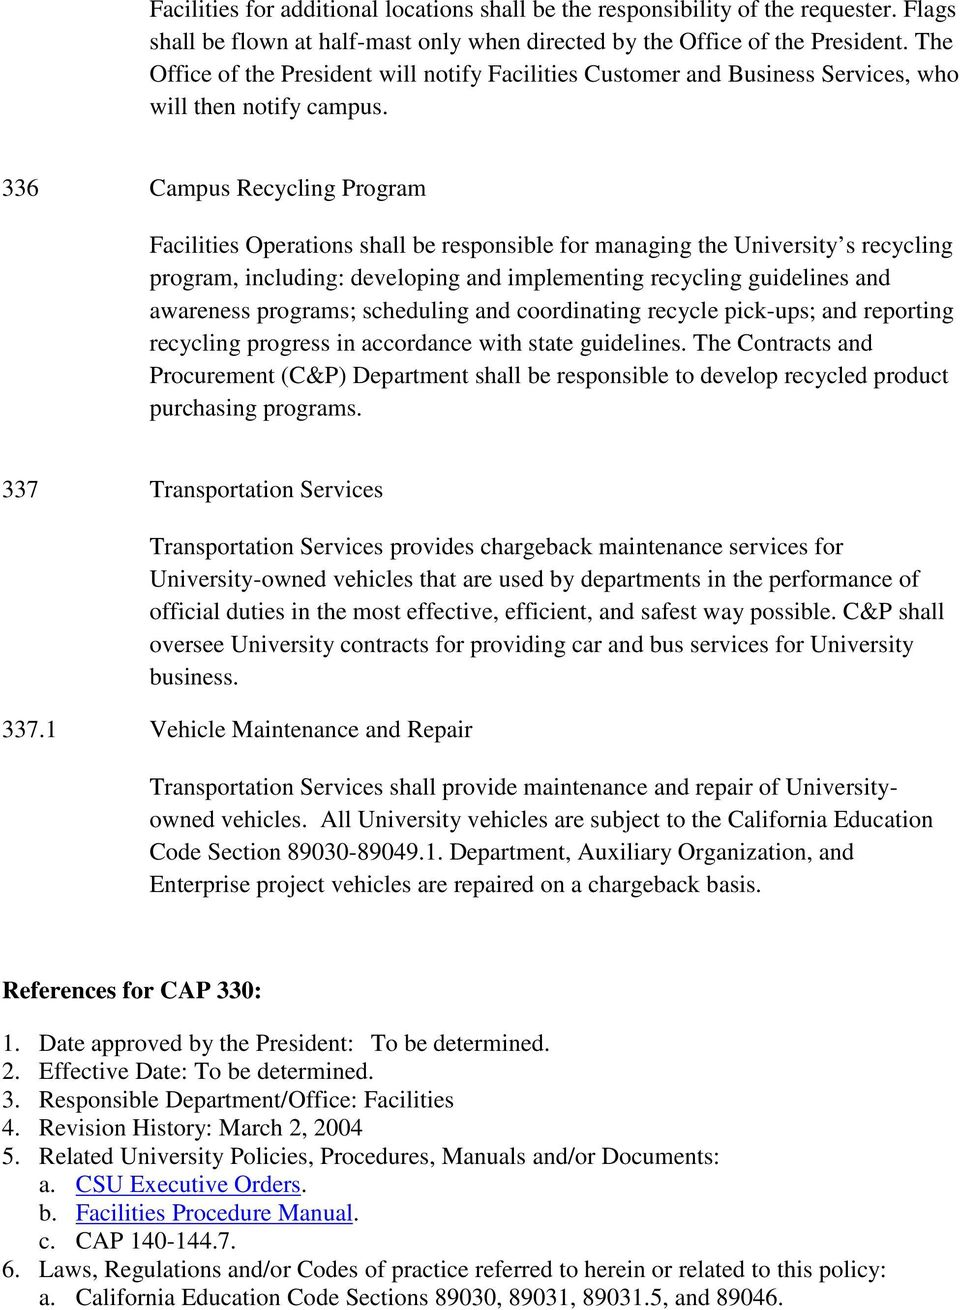 336 Campus Recycling Program Facilities Operations shall be responsible for managing the University s recycling program, including: developing and implementing recycling guidelines and awareness